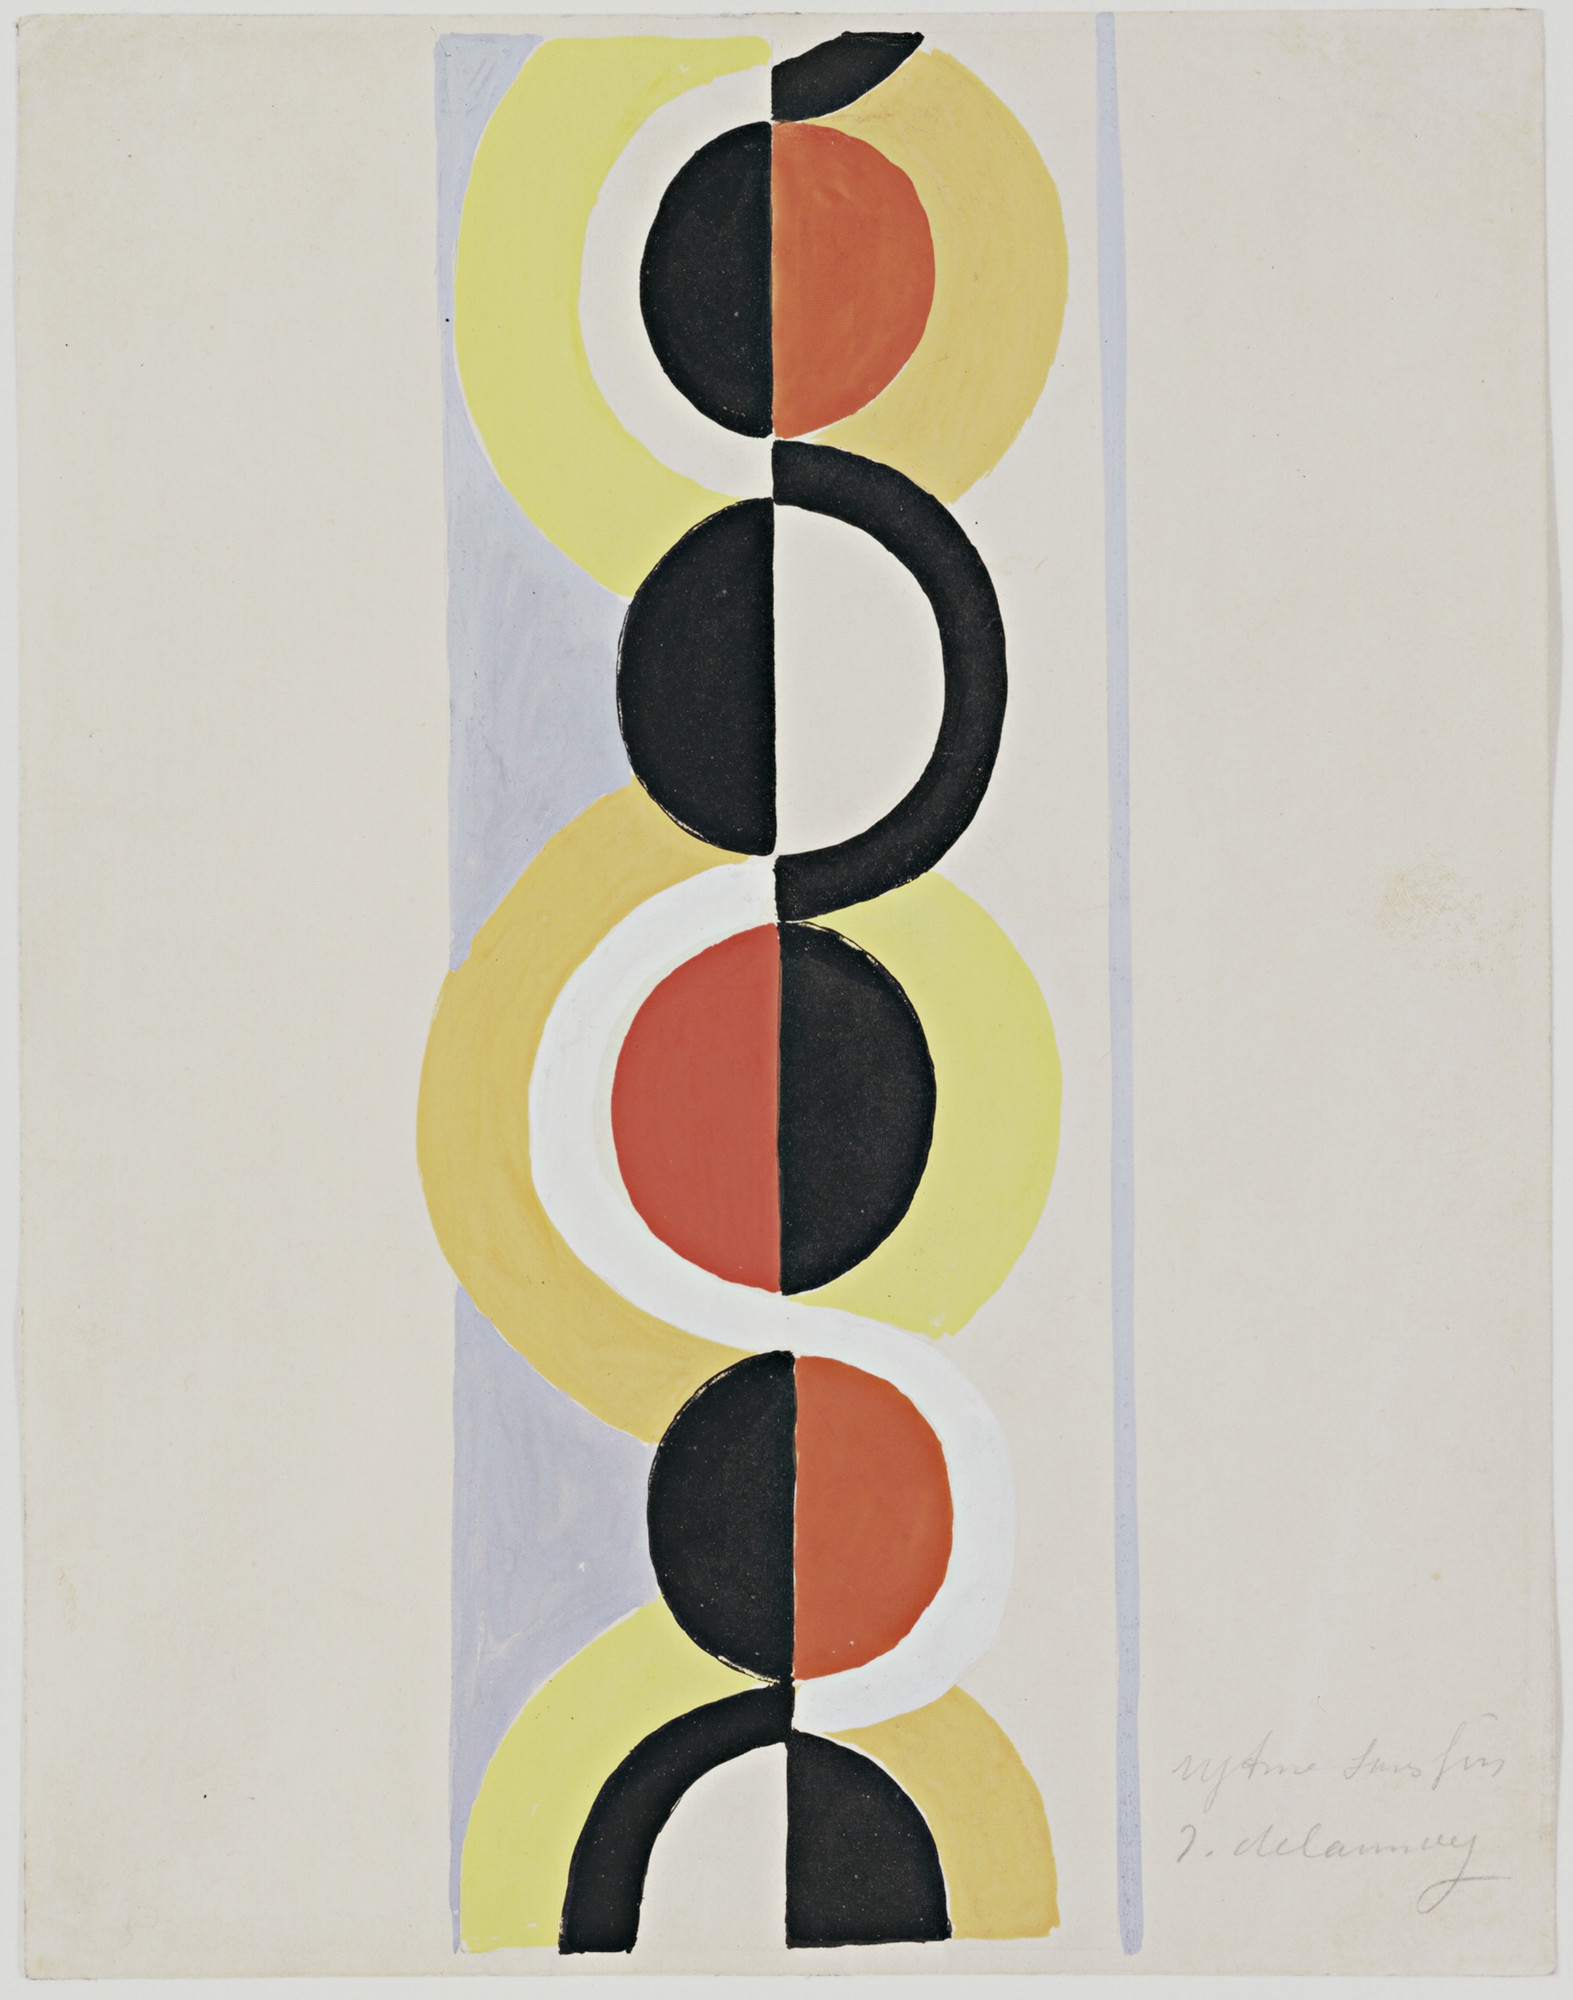 Robert Delaunay. Rhythm Without End. (1935)